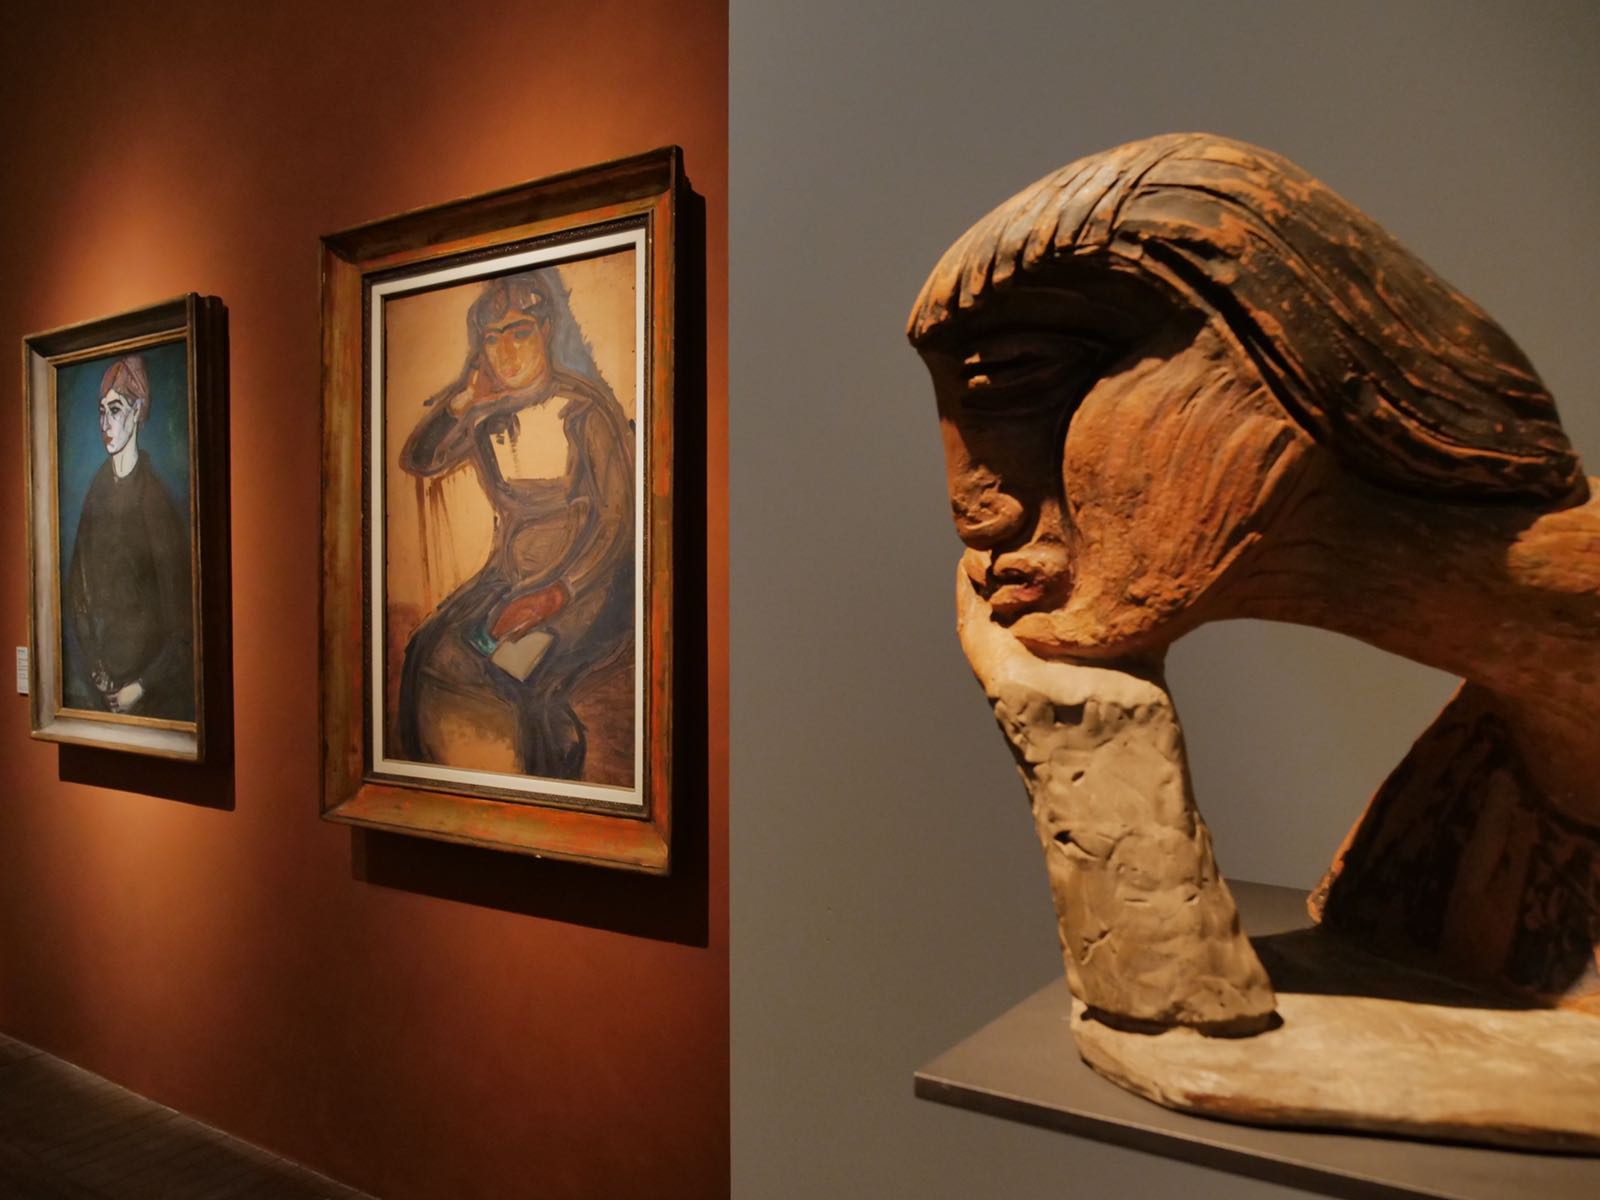 opere in mostra